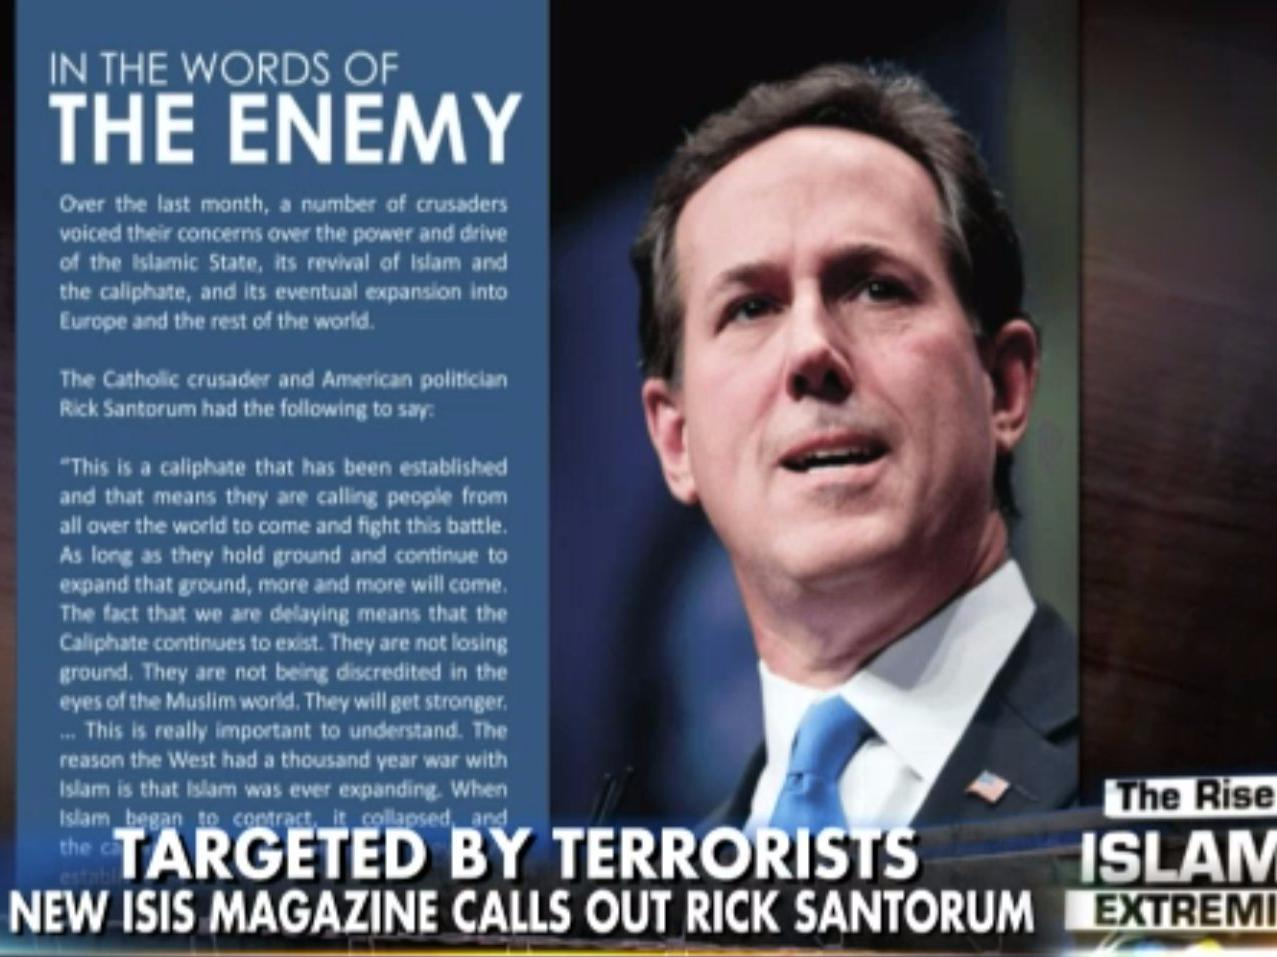 Presidential hopeful Rick Santorum just compared The New York Times to ISIS propaganda